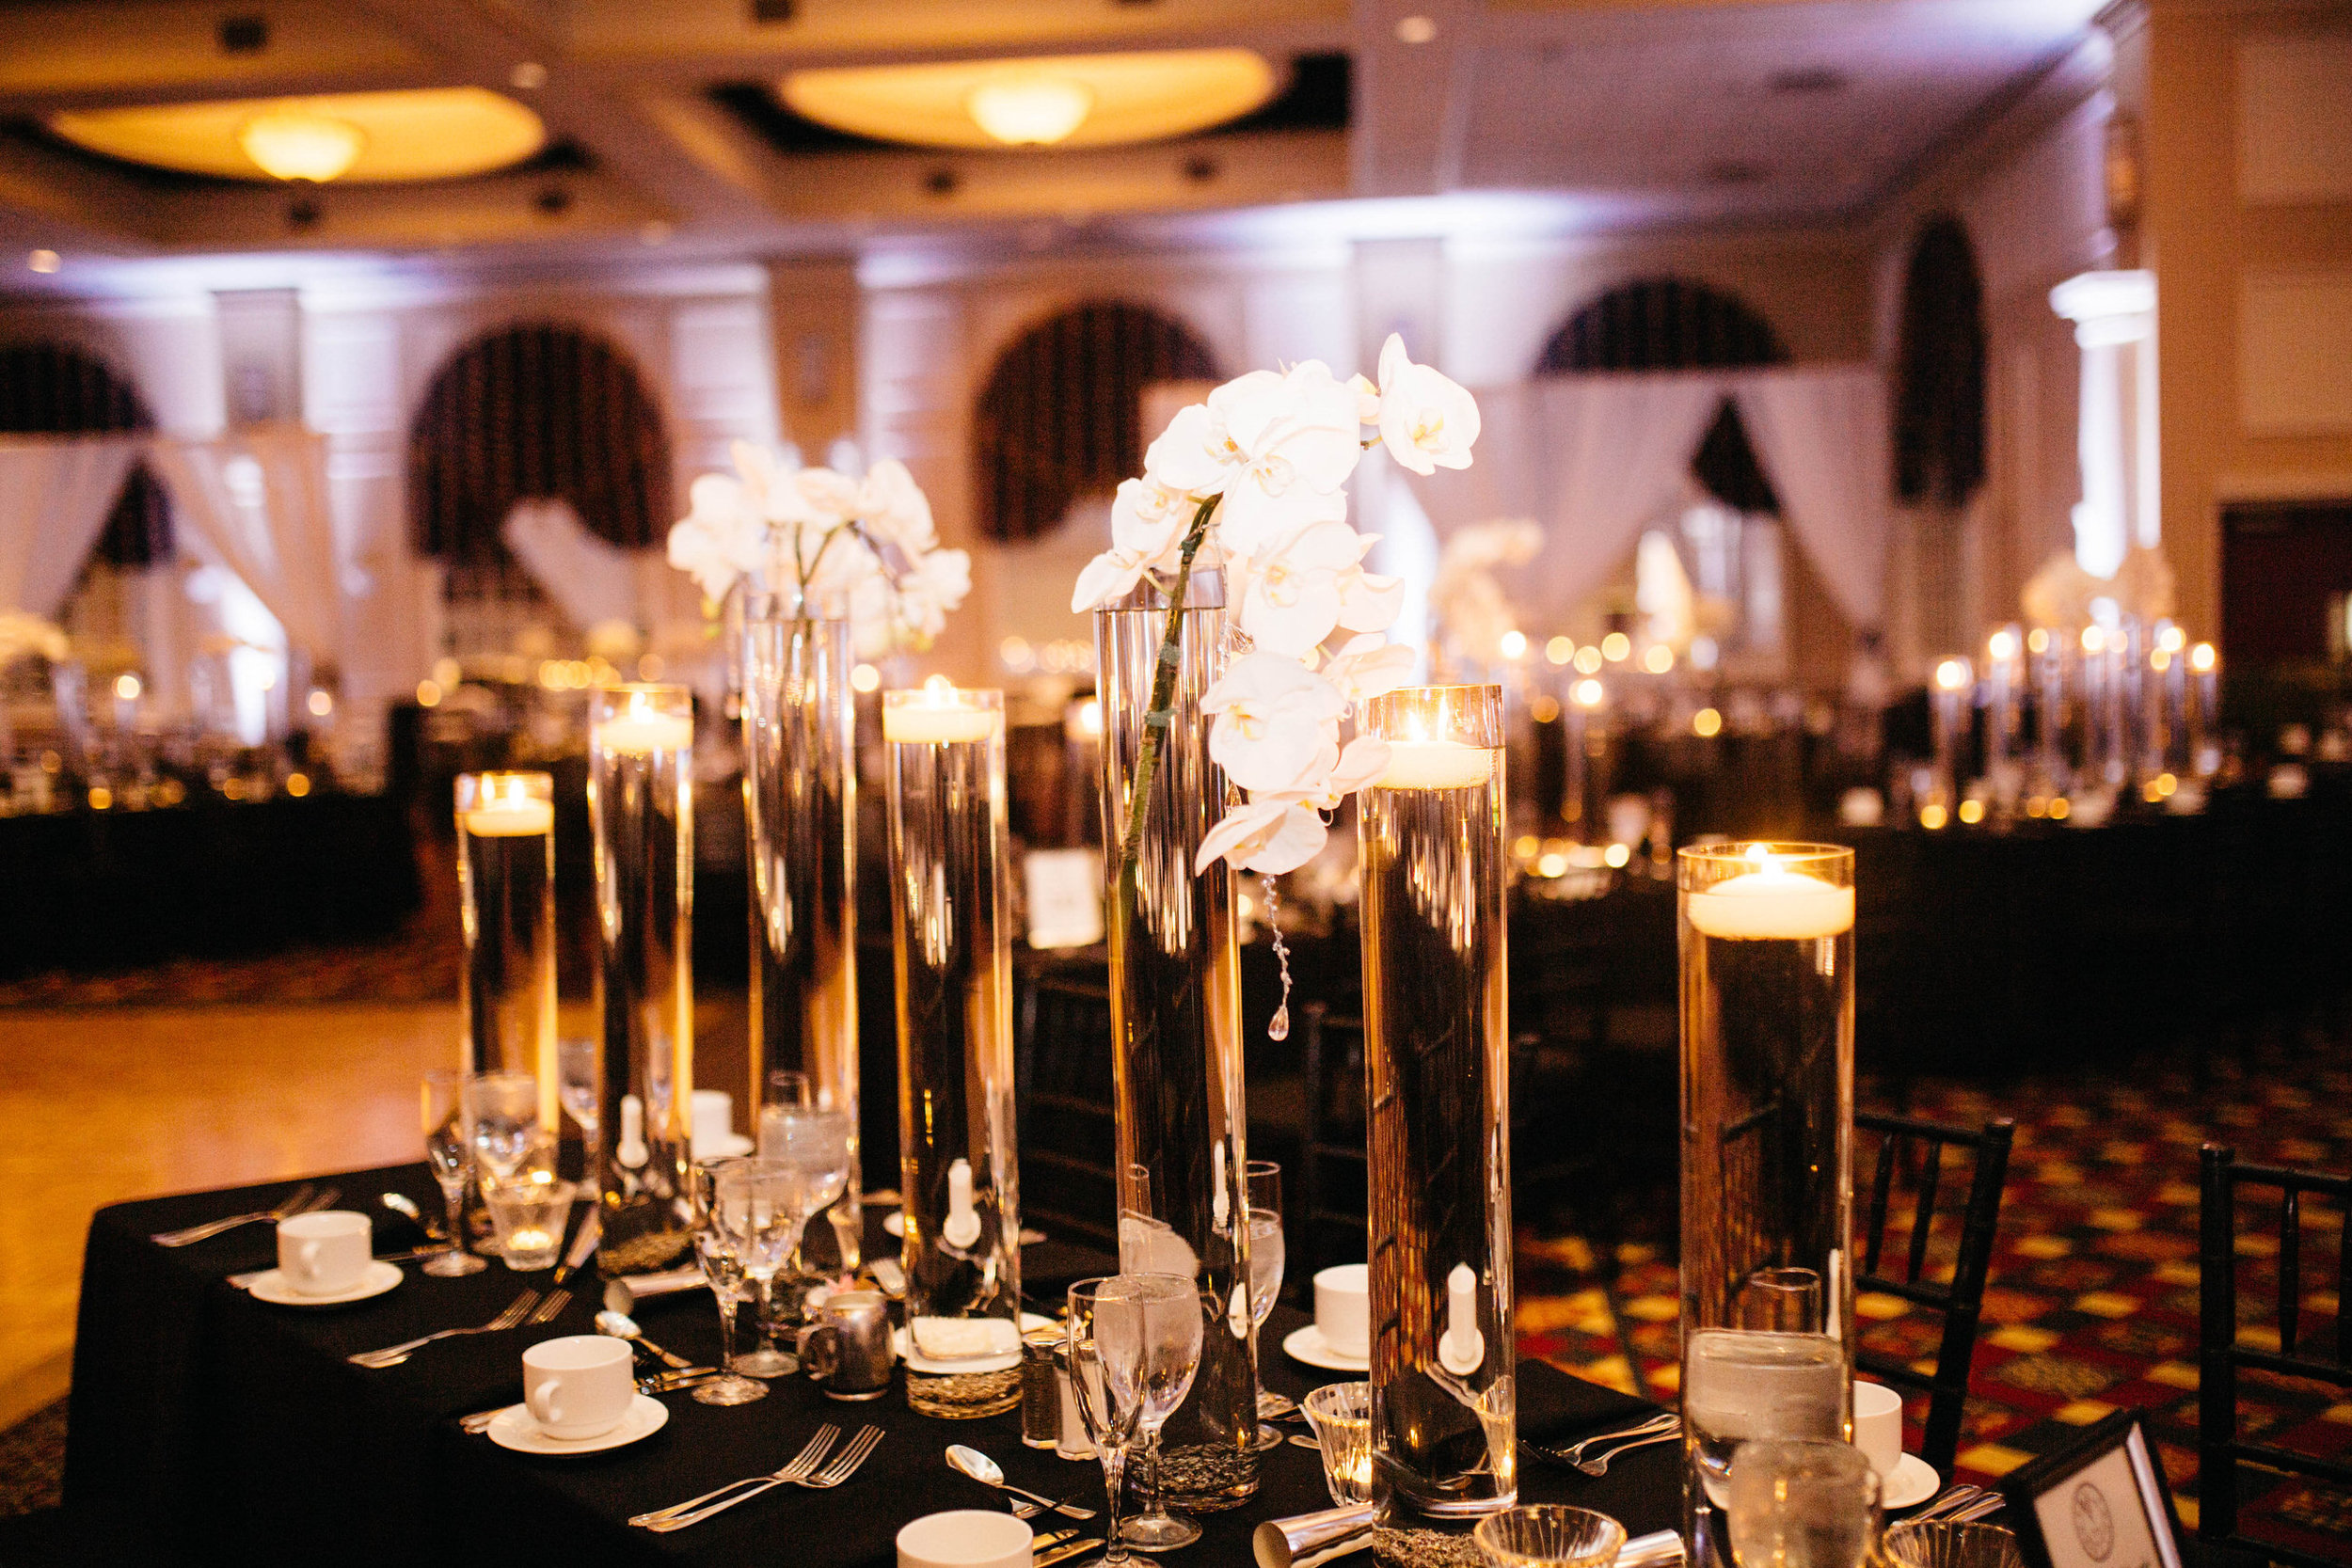 24 White Orchids Floating Candles Black and Silver Wedding.jpg